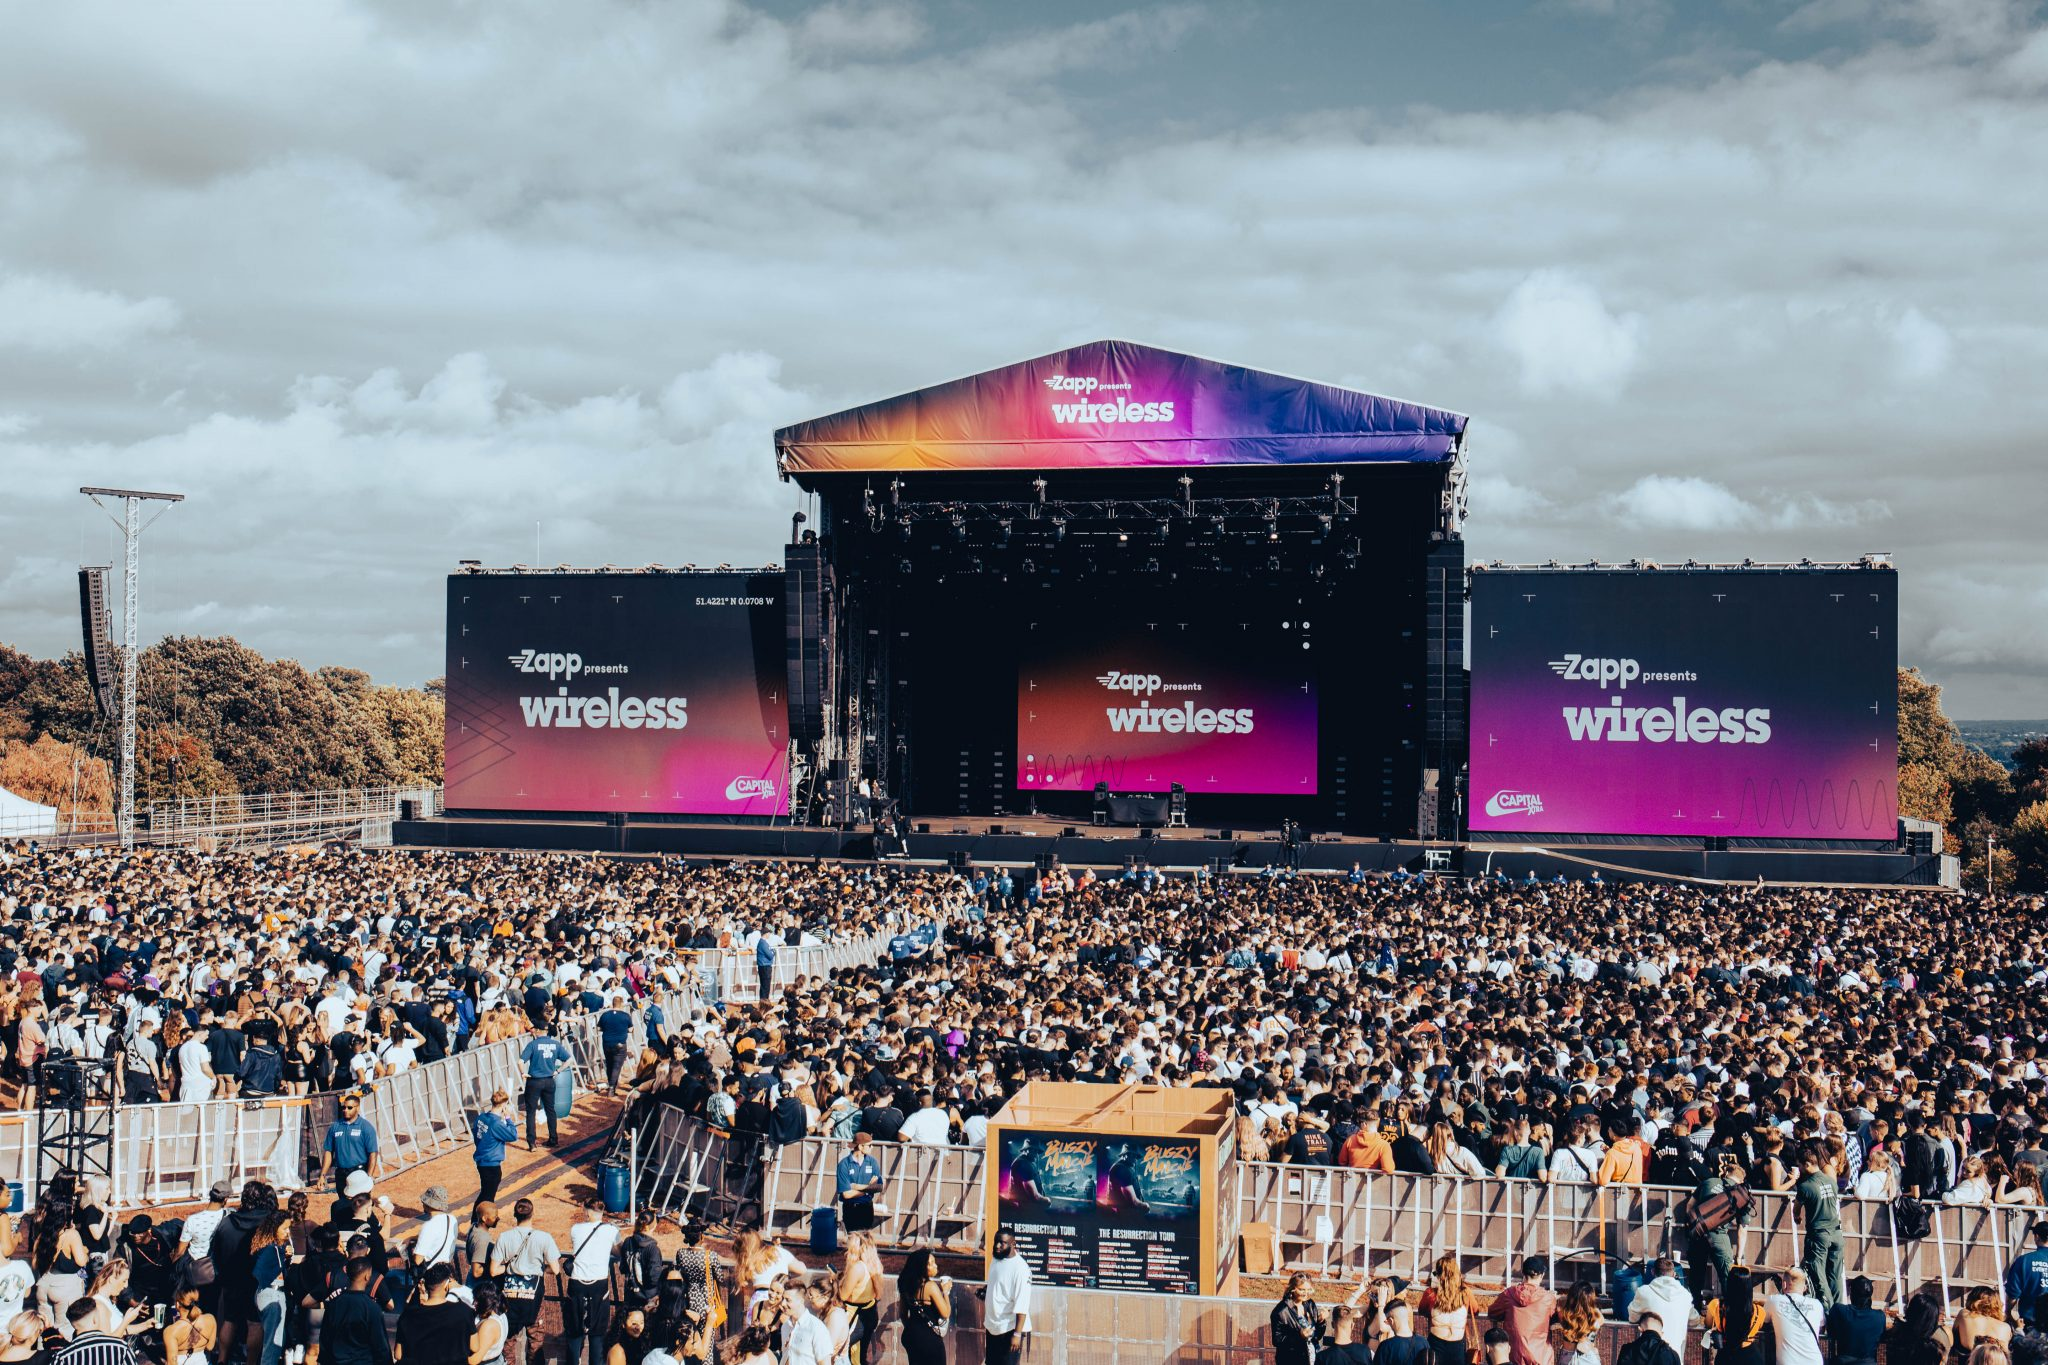 Zapp logo on the main stage at Wireless festival